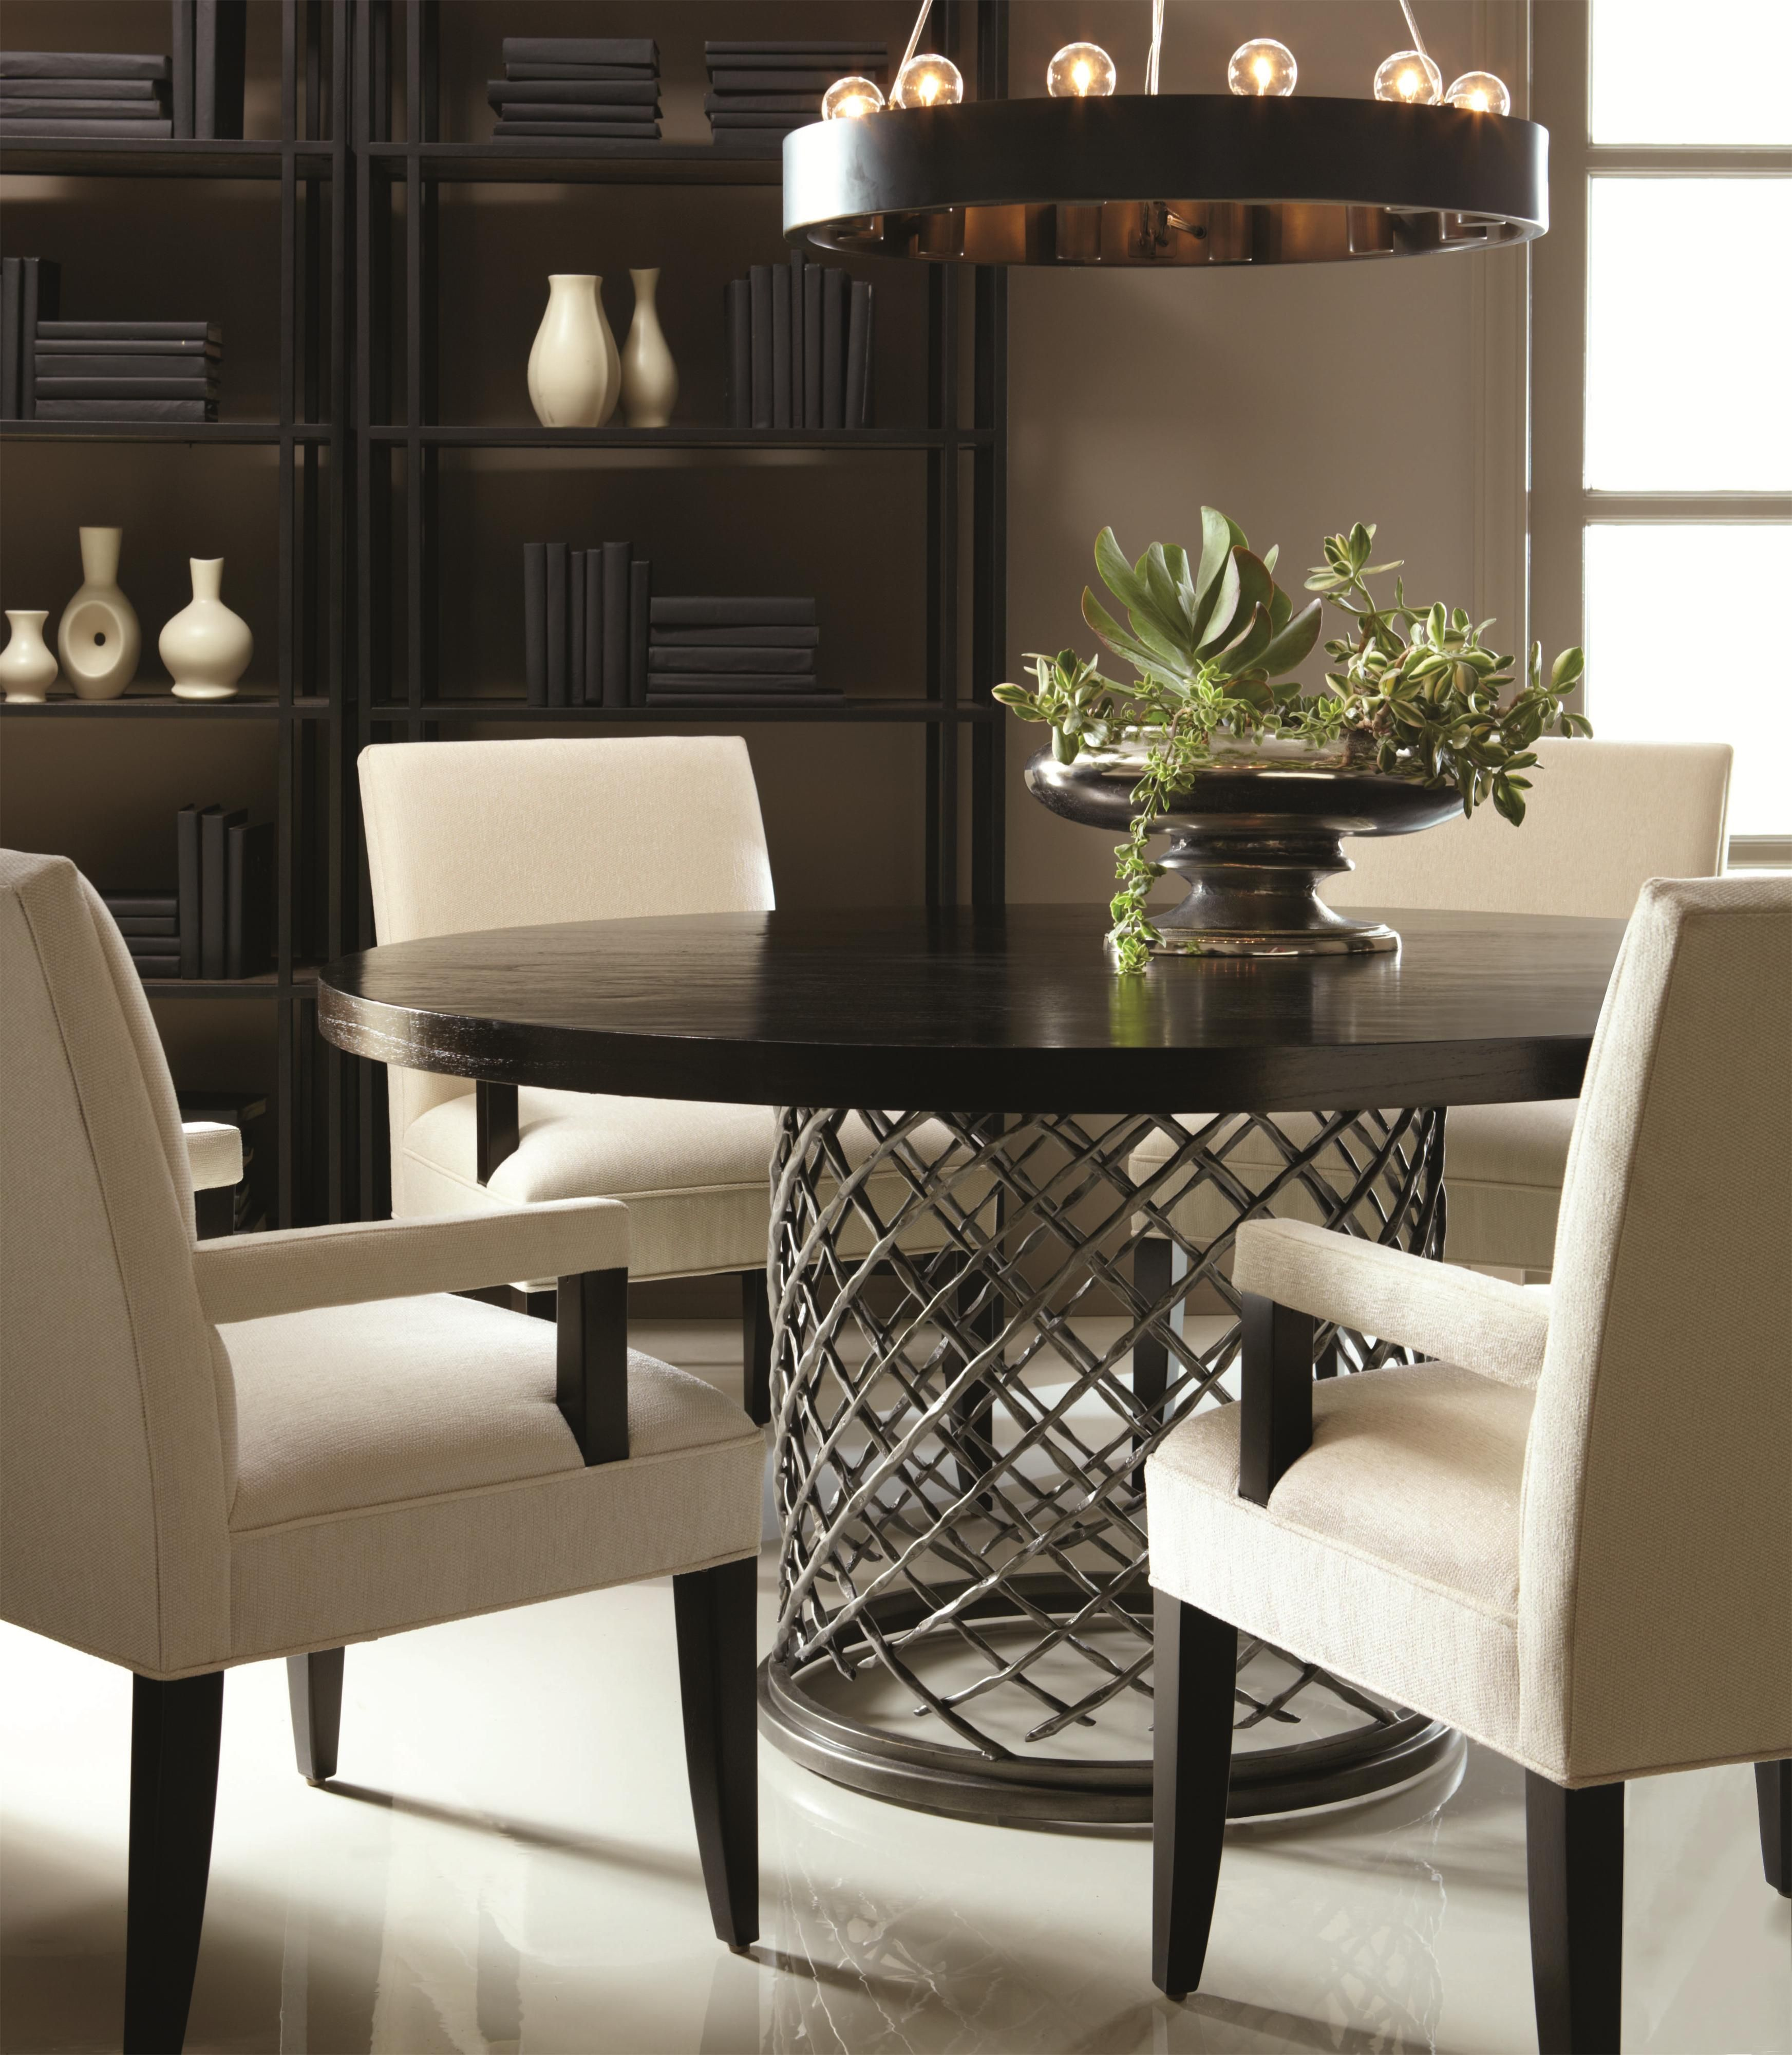 This round dining table features a handhammered metal base with a